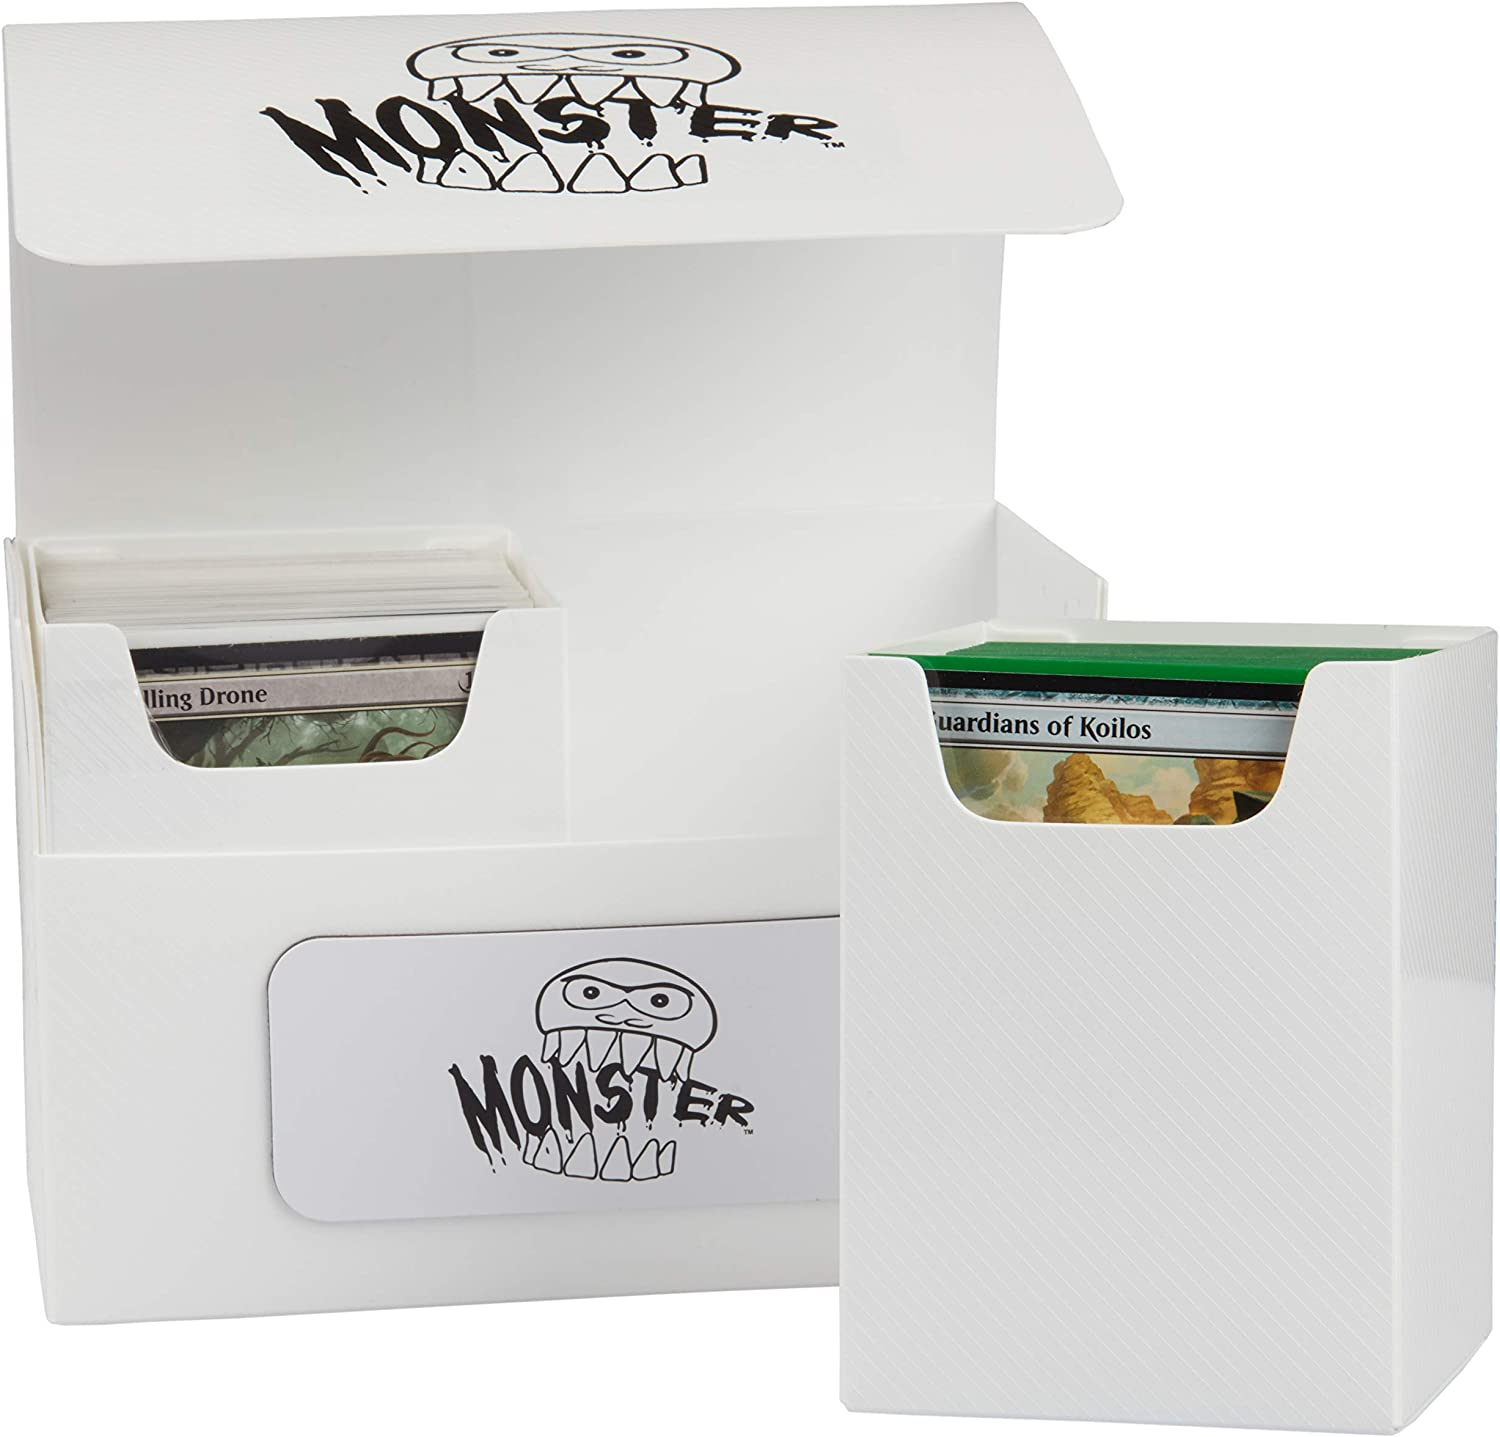 Two XL Removable Compartments Hold 200 Double Sleeved Game Cards Extra Large Magnetic Deck Box MTG Commander Big Case